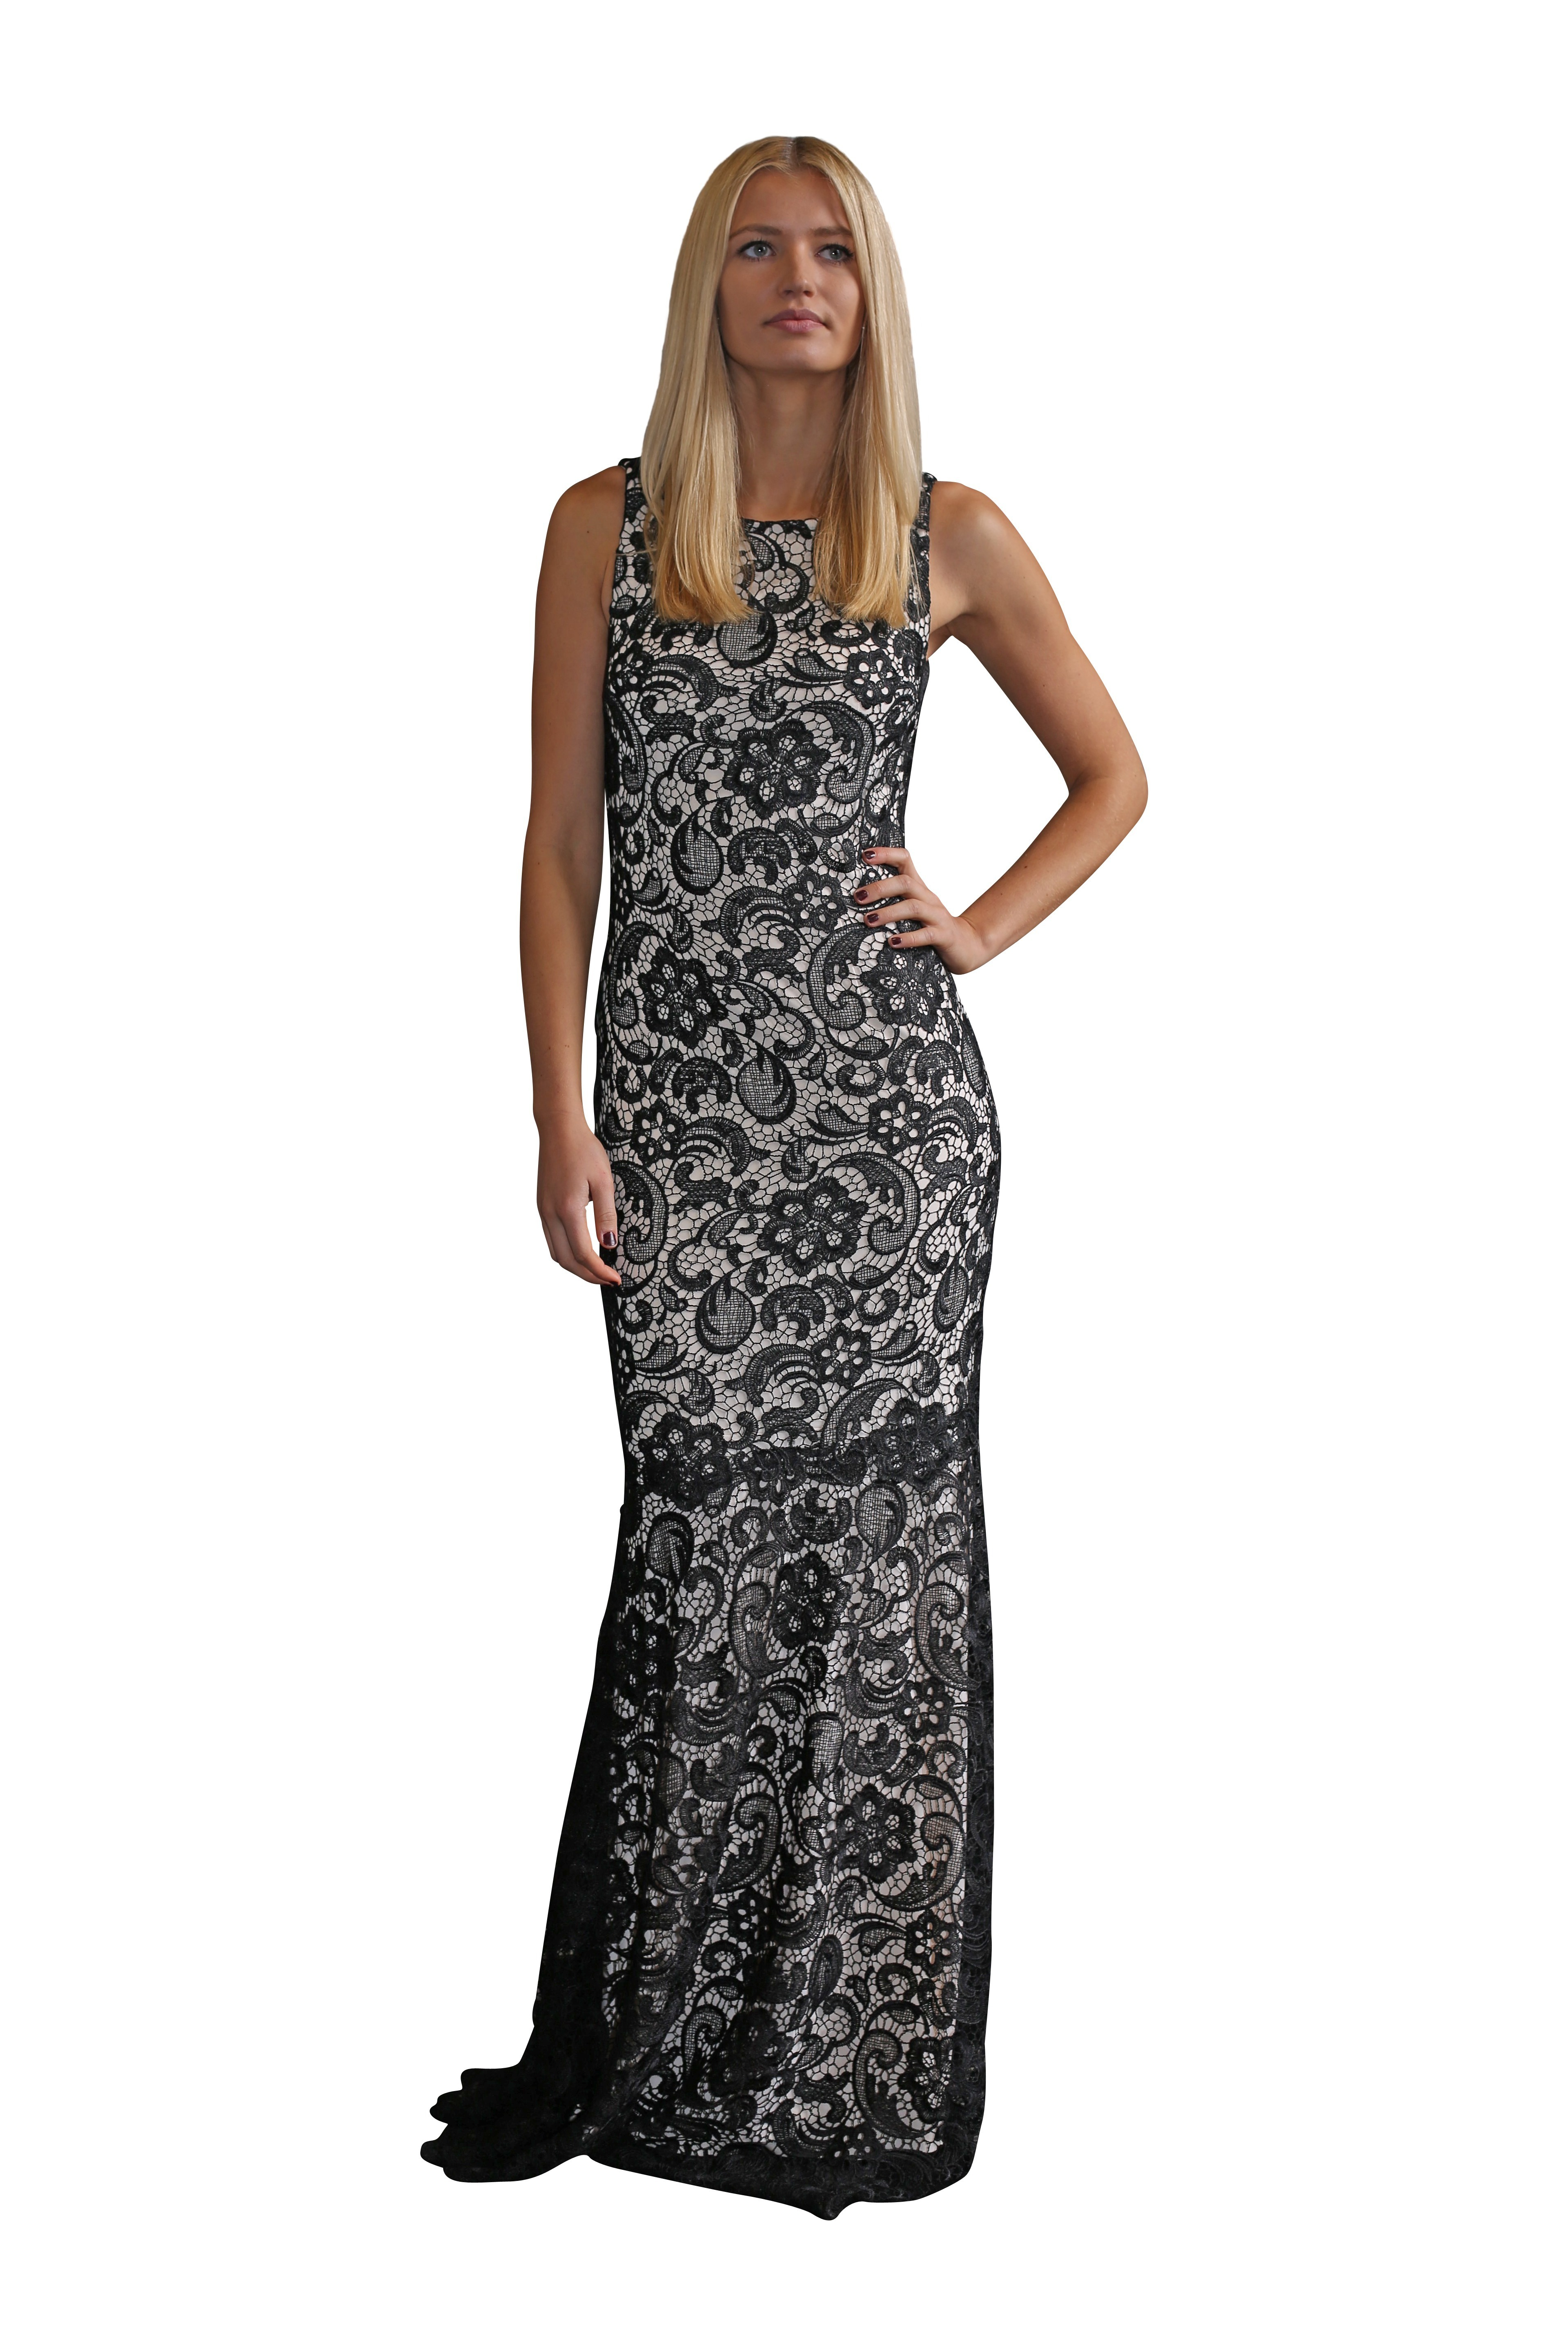 Langhem Alessander Lace Black And White Dress Size 6 The